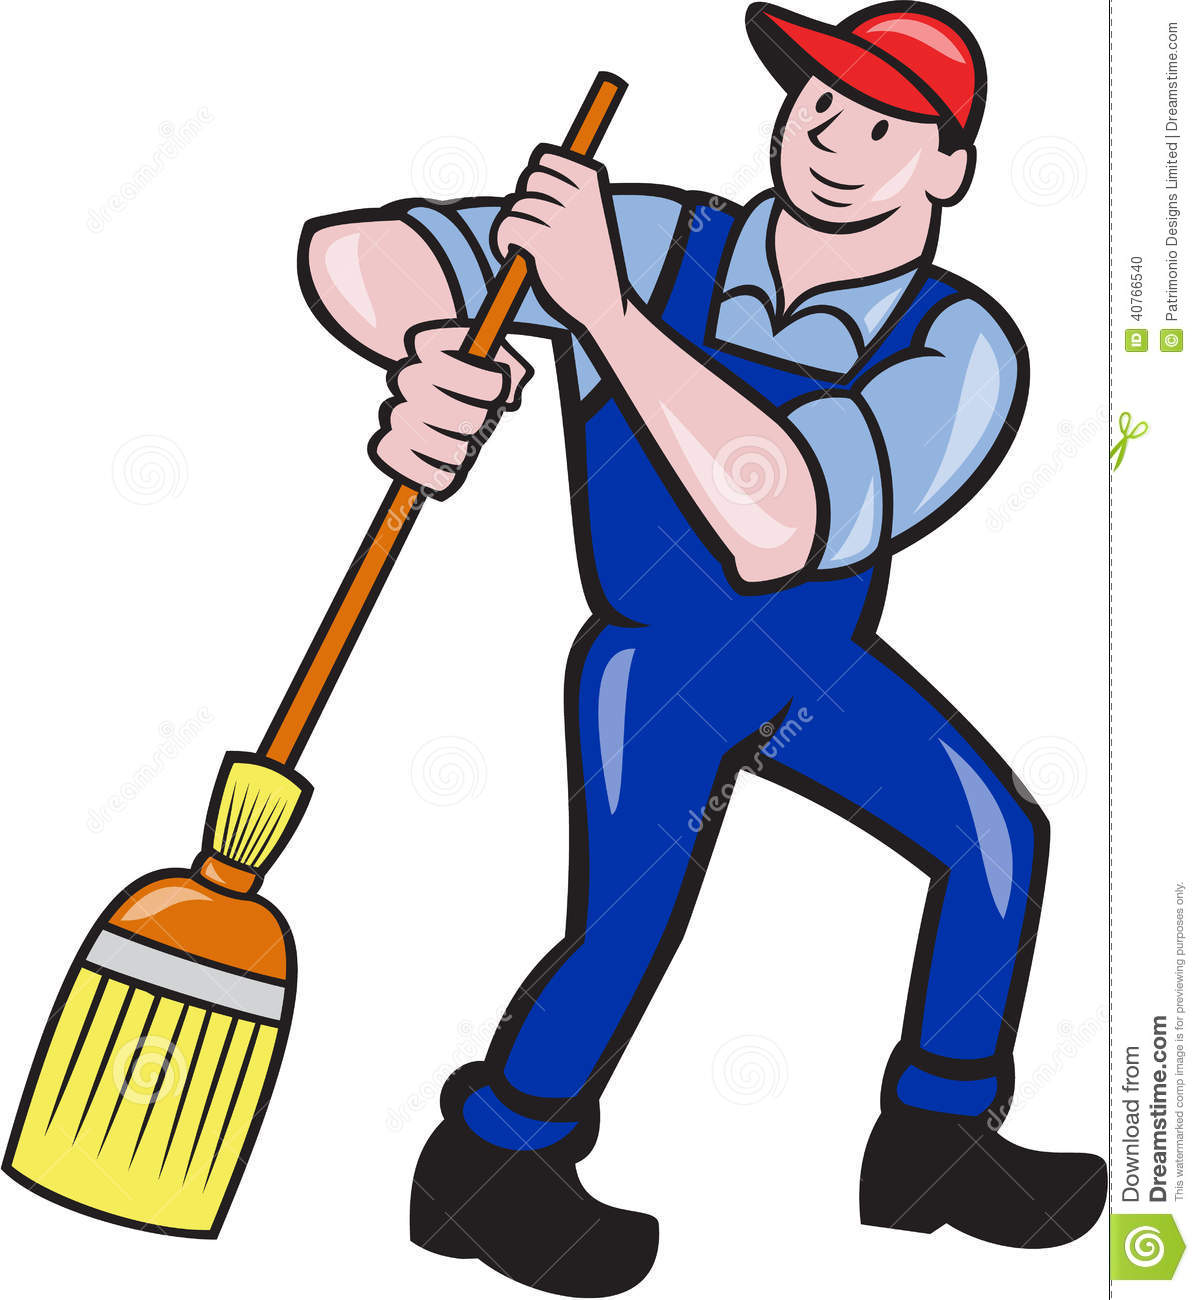 Janitor Clipart - Clipart Suggest